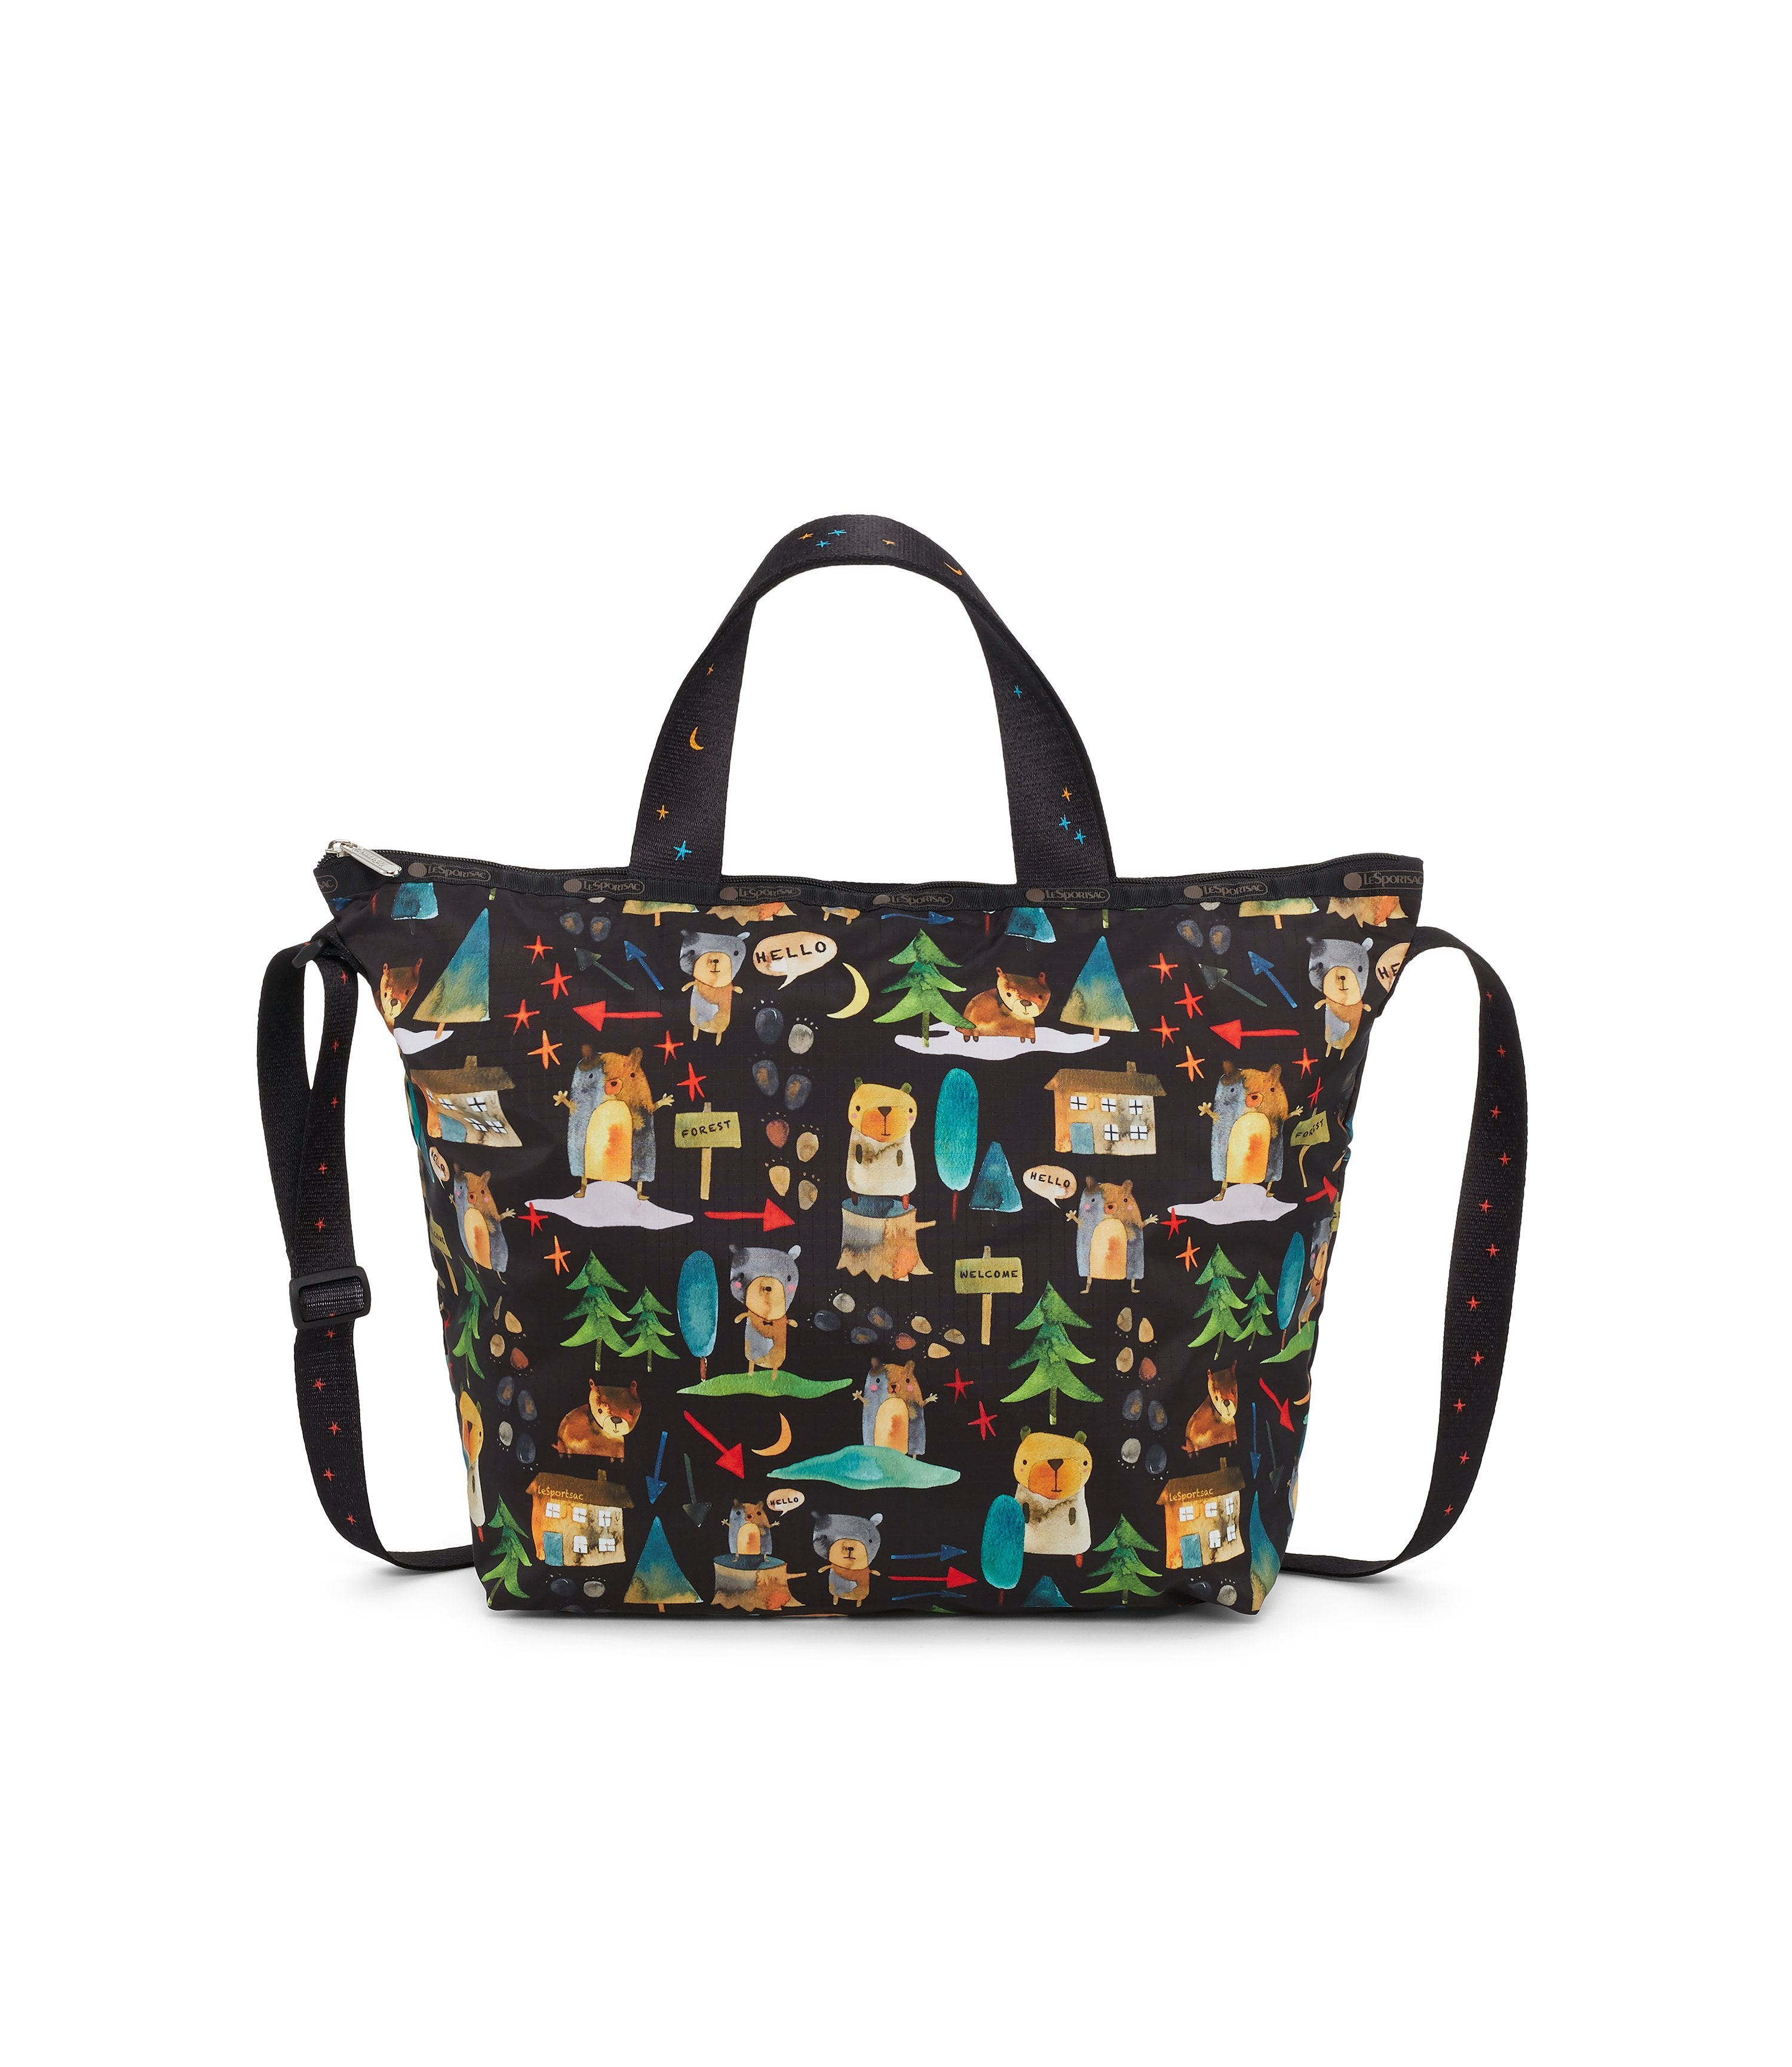 Easy Carry Tote, Nylon Tote Bags, LeSportsac, Hello Bears print